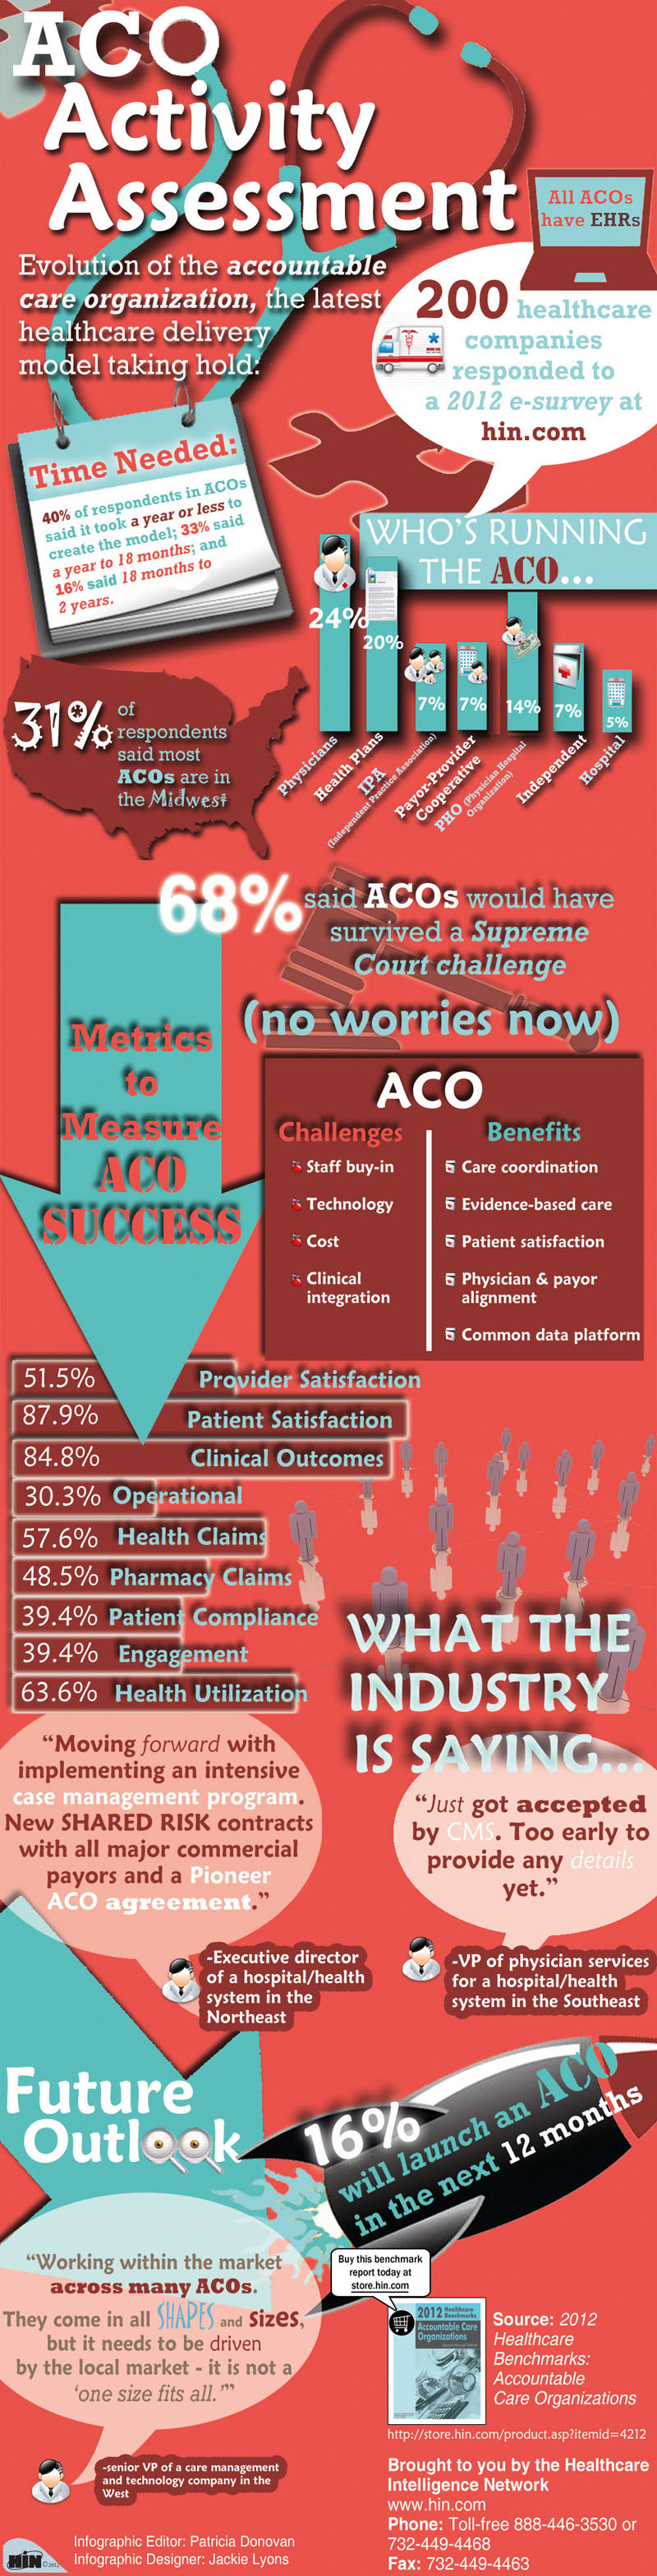 ACO Activity Assessment